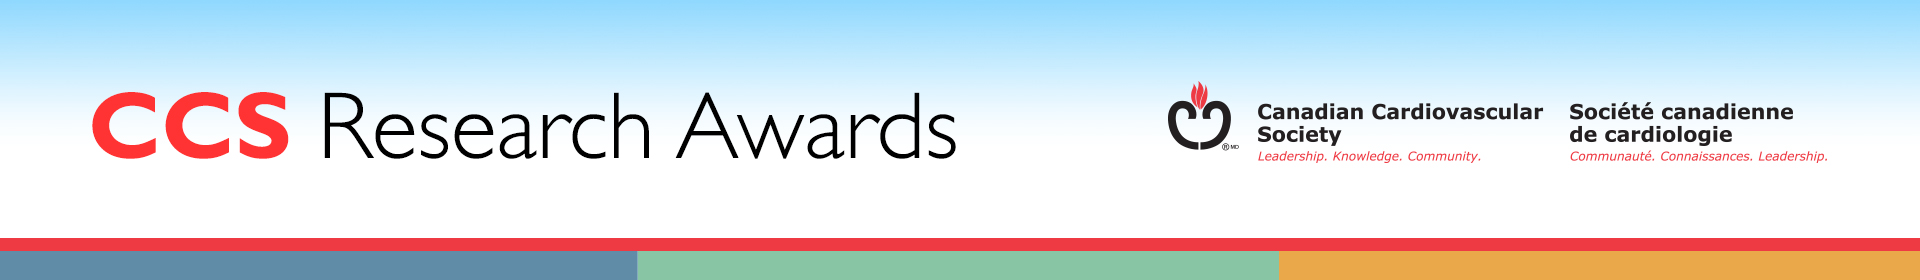 CCS Research Awards Event Banner